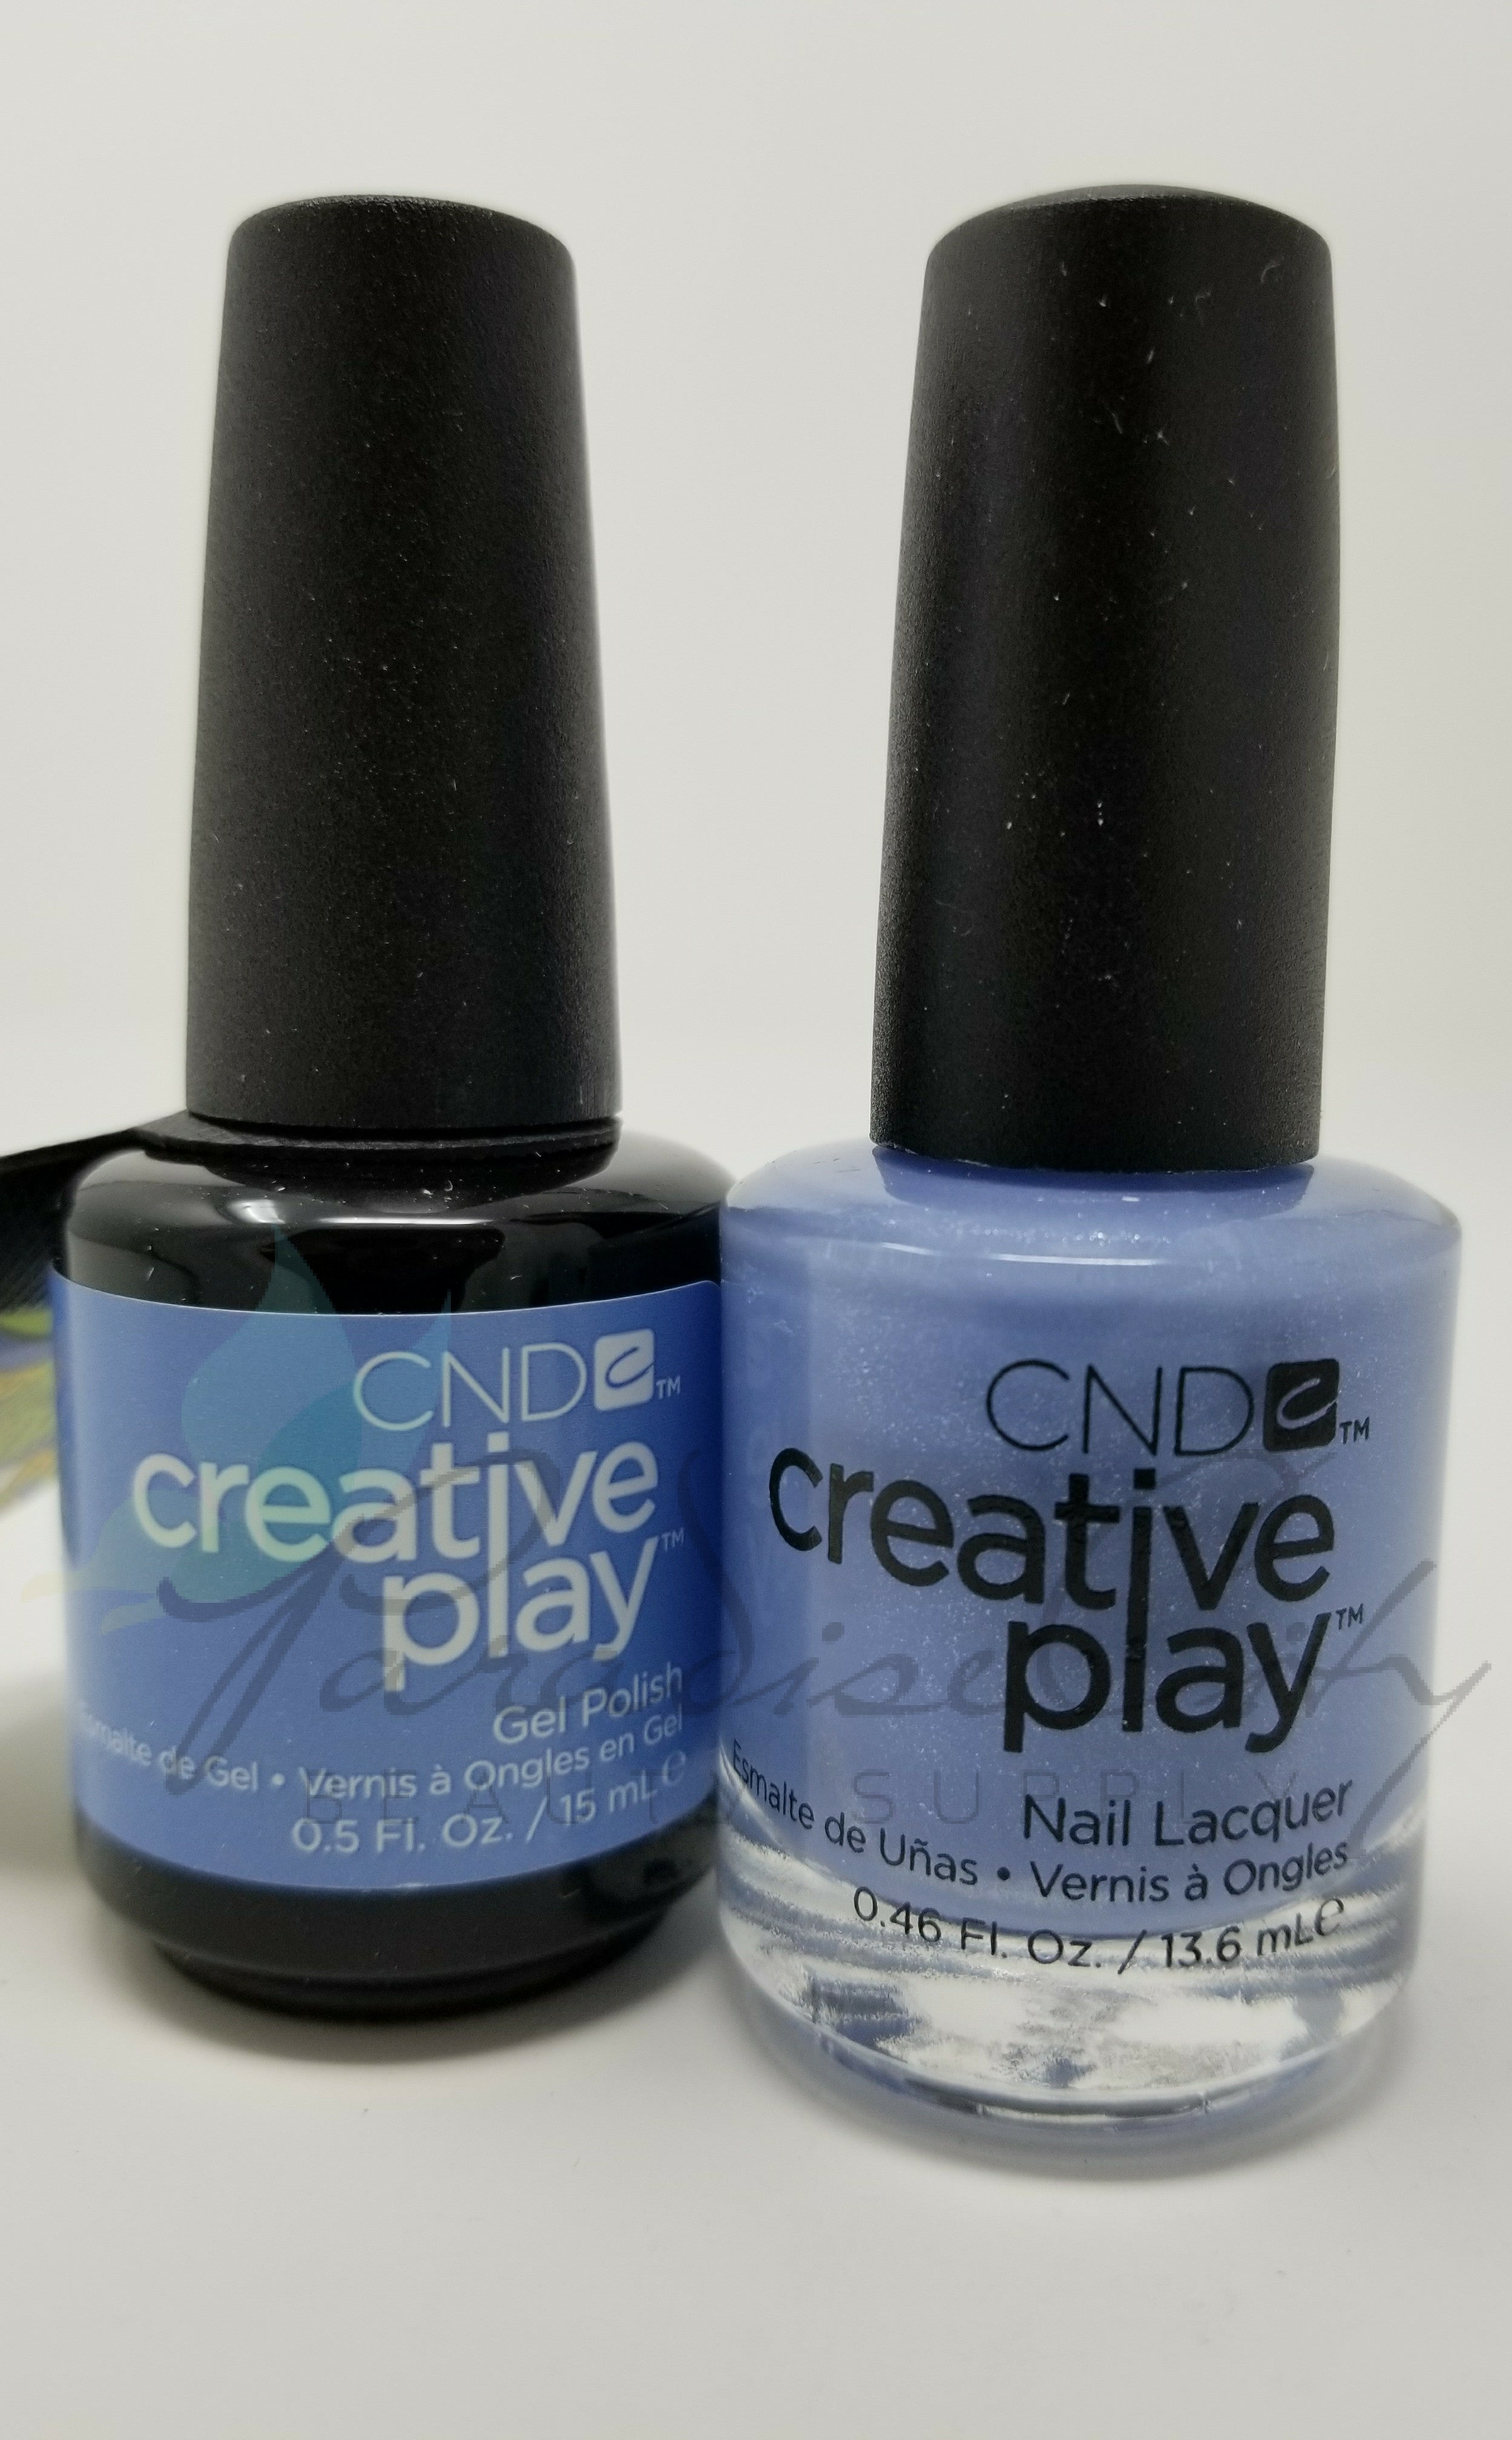 CND Creative Play Matching Gel Polish & Nail Lacquer - #504 ...